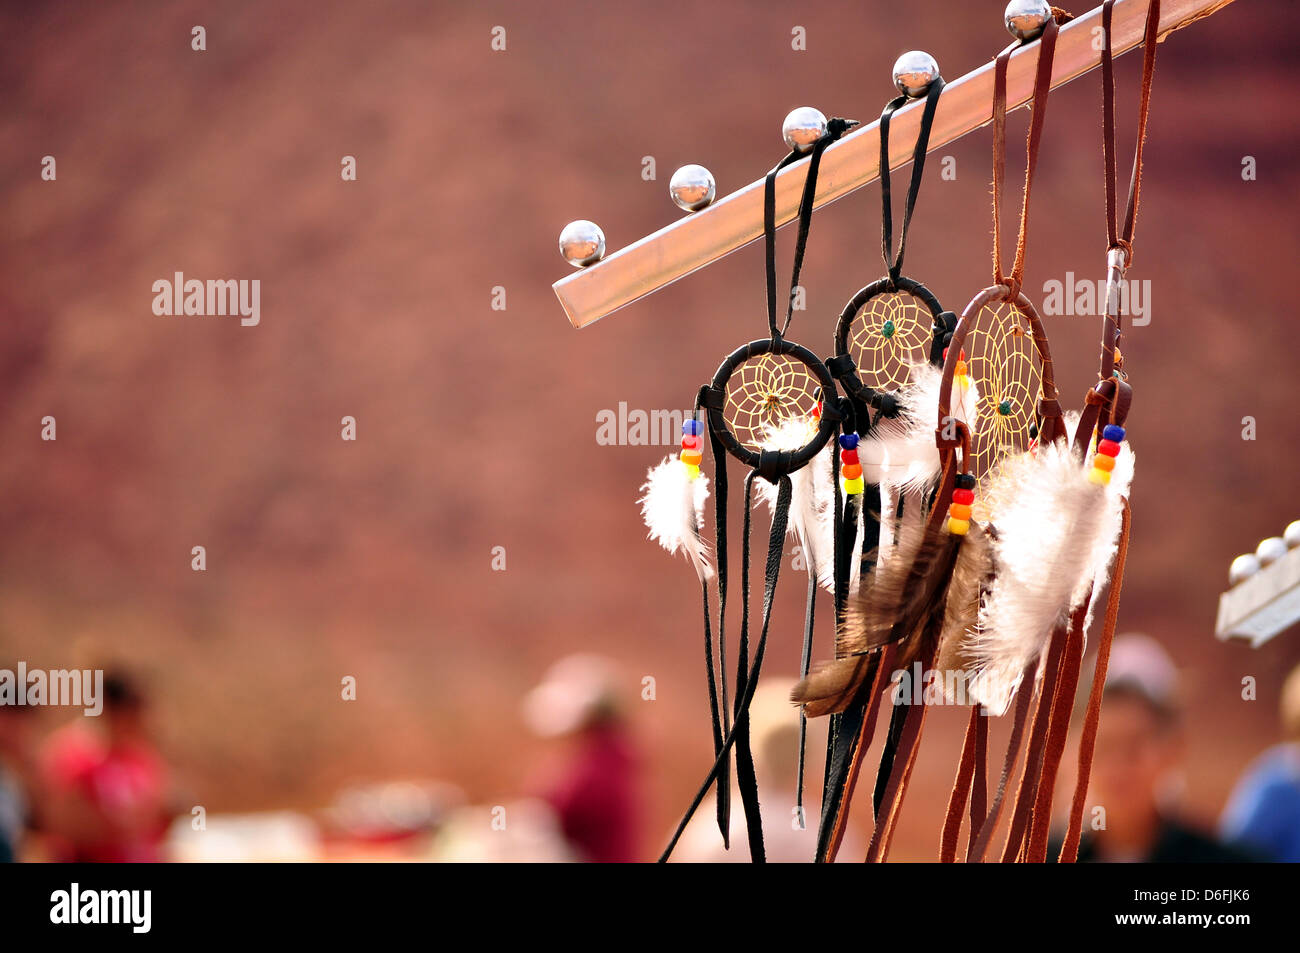 Indian dreamcatcher in reserve - Stock Image